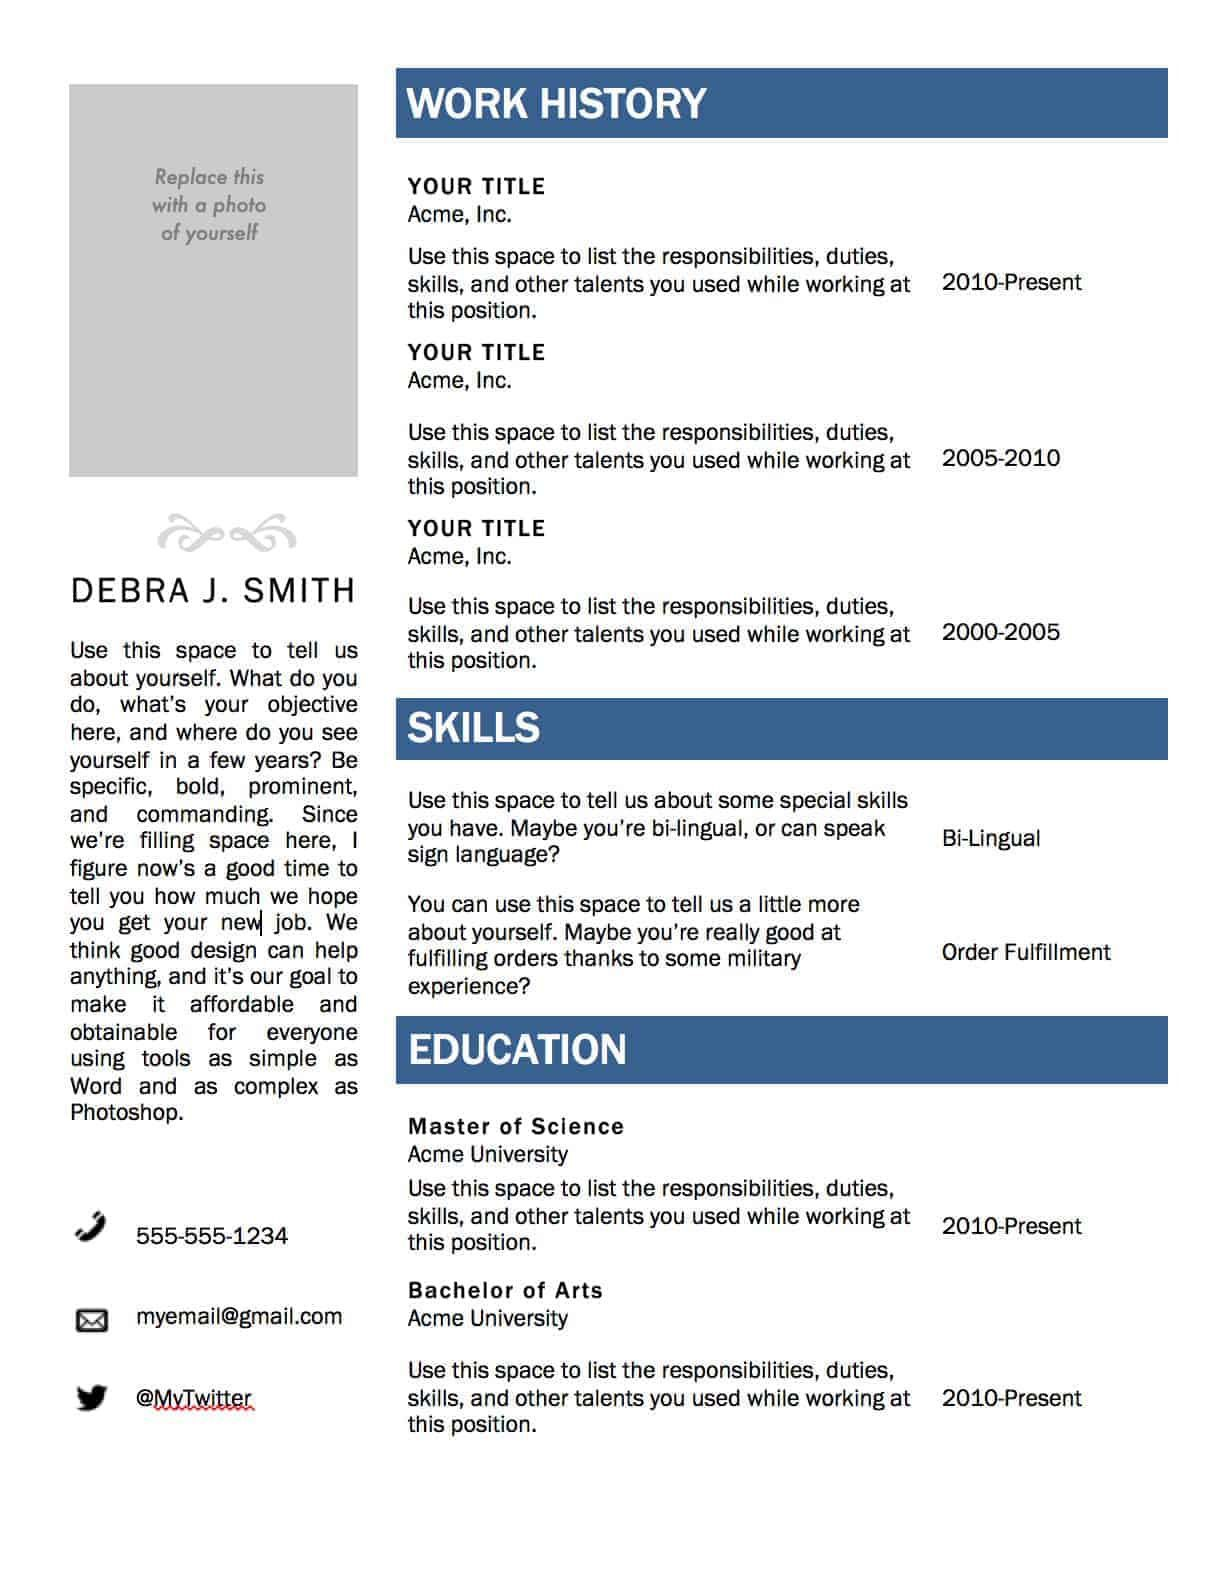 009 Phenomenal Microsoft Word Free Template High Resolution  Templates For Report Invoice Uk DownloadFull